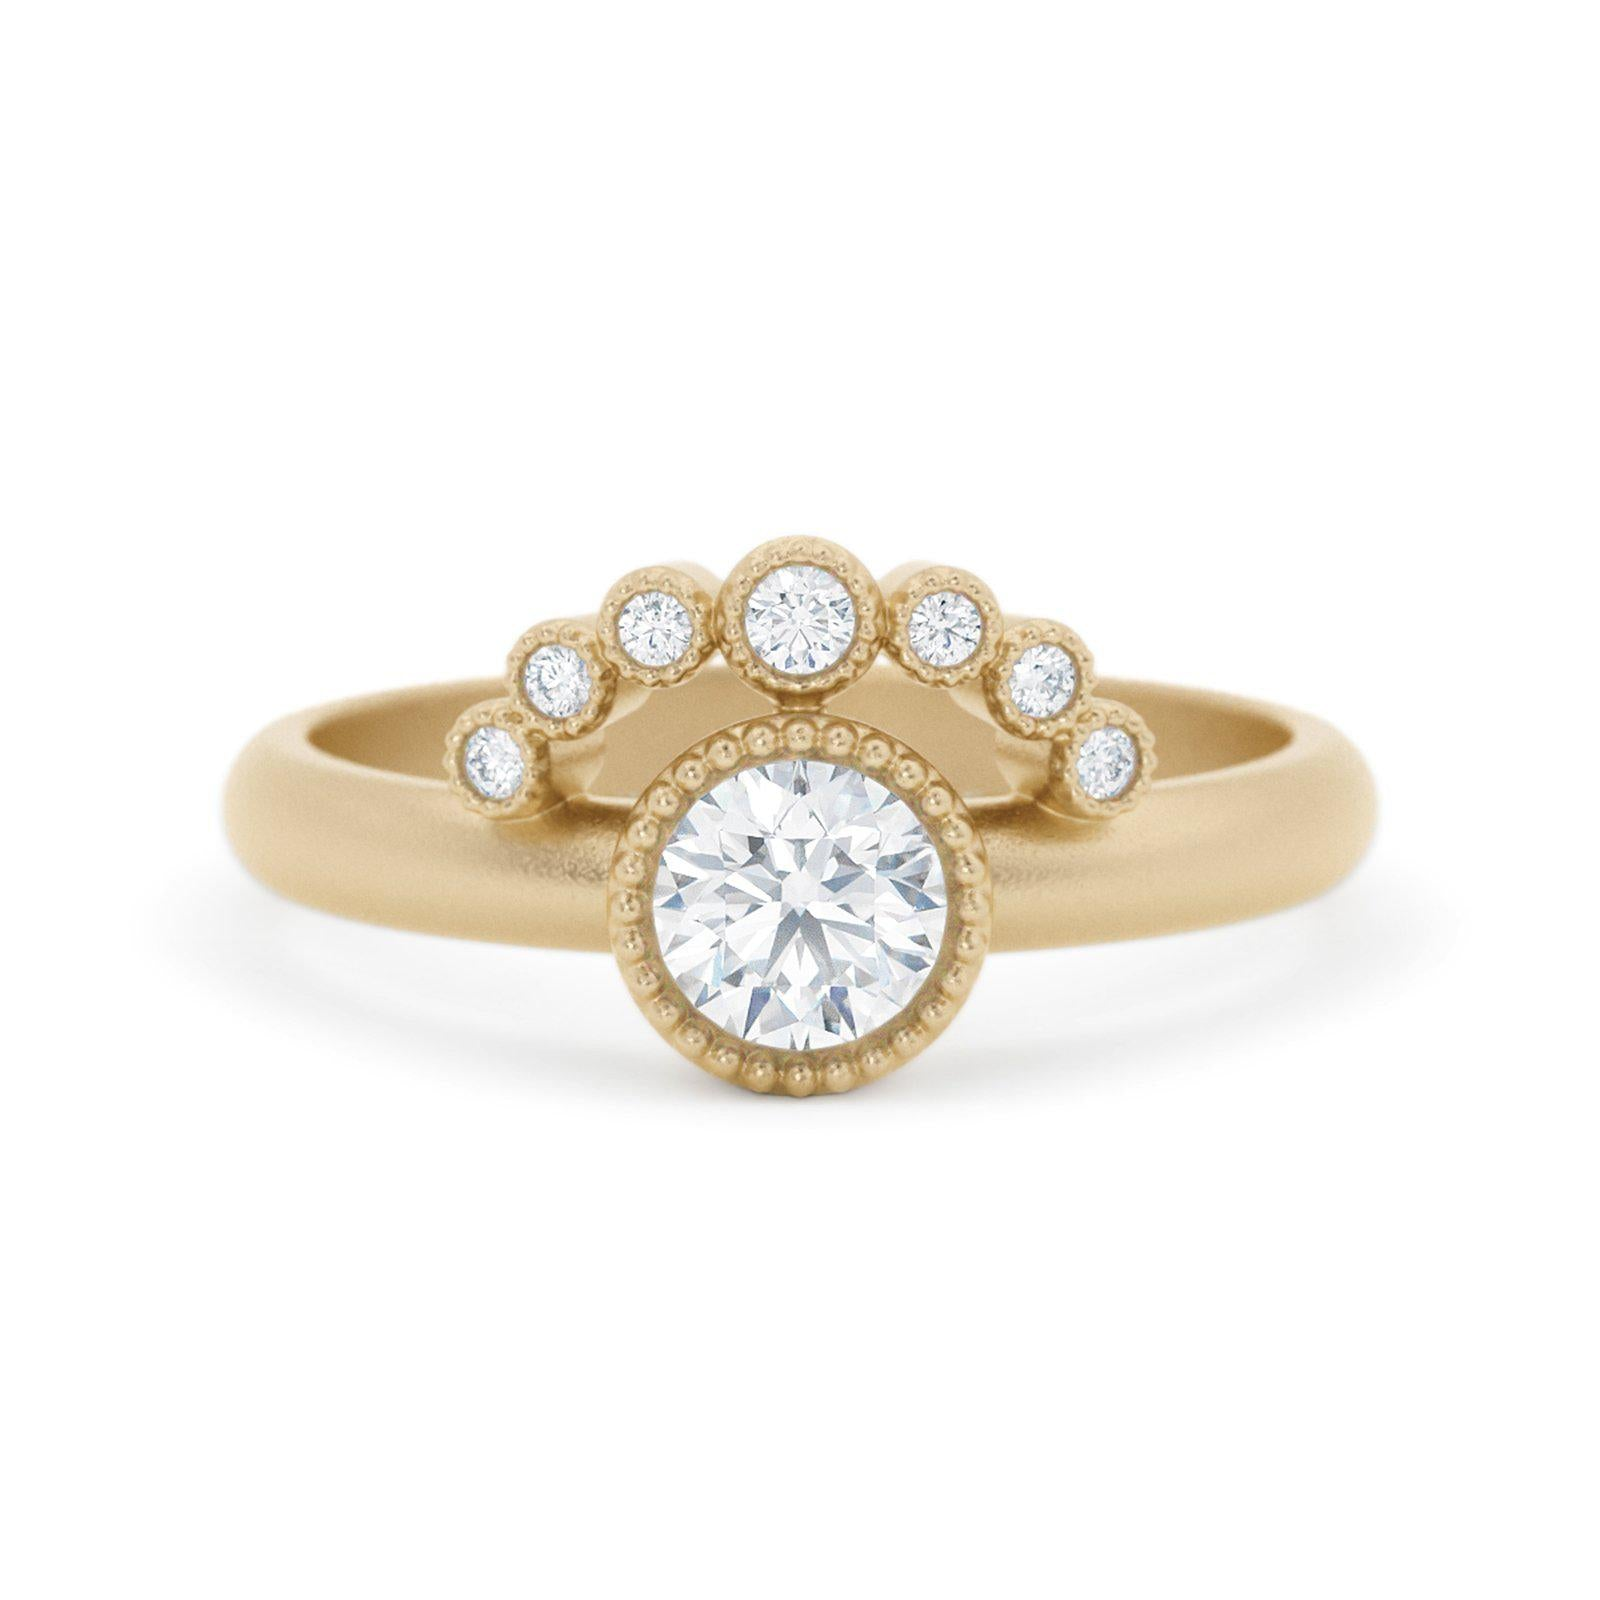 Adeline Diamond Tiara Ring 14k